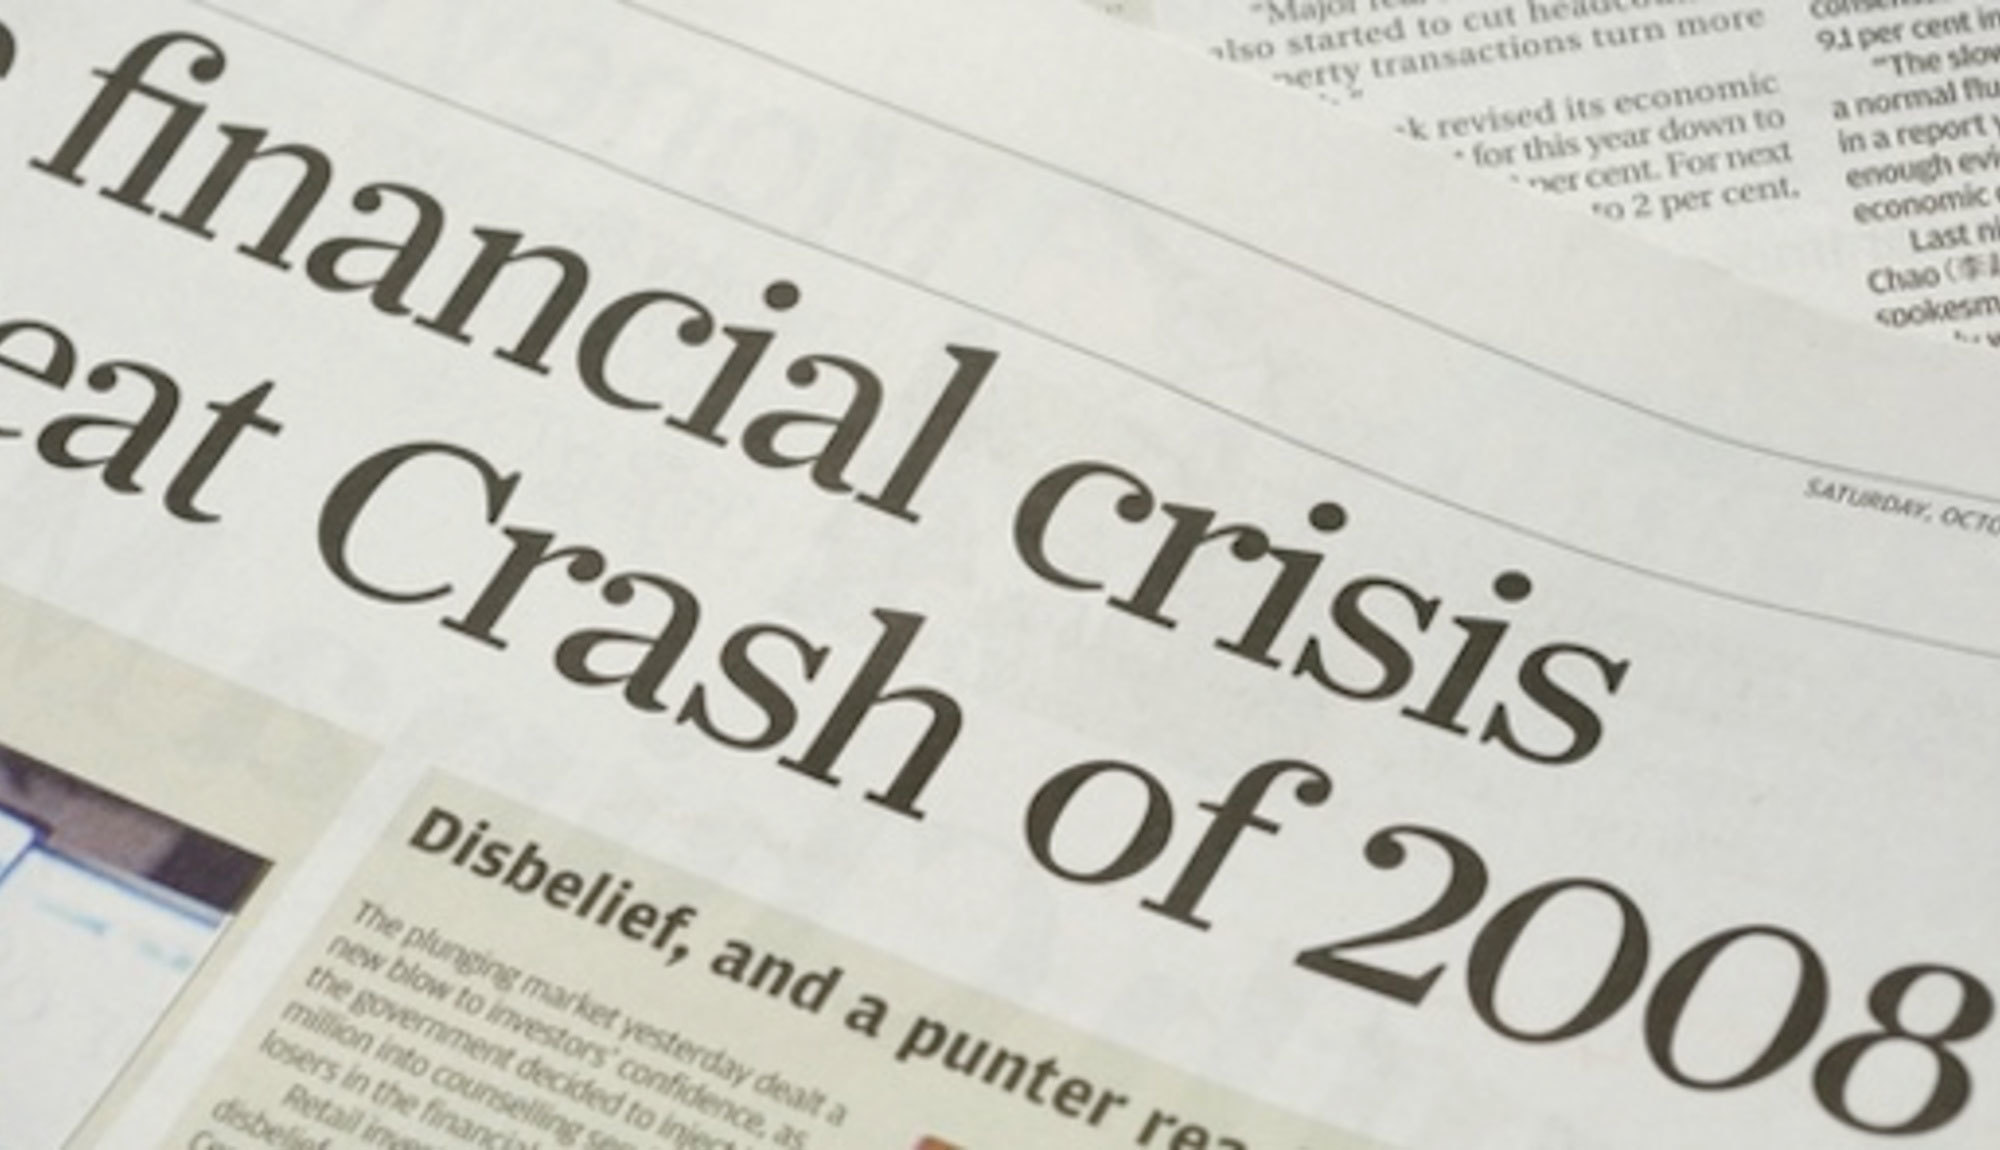 Financial Crash 2008